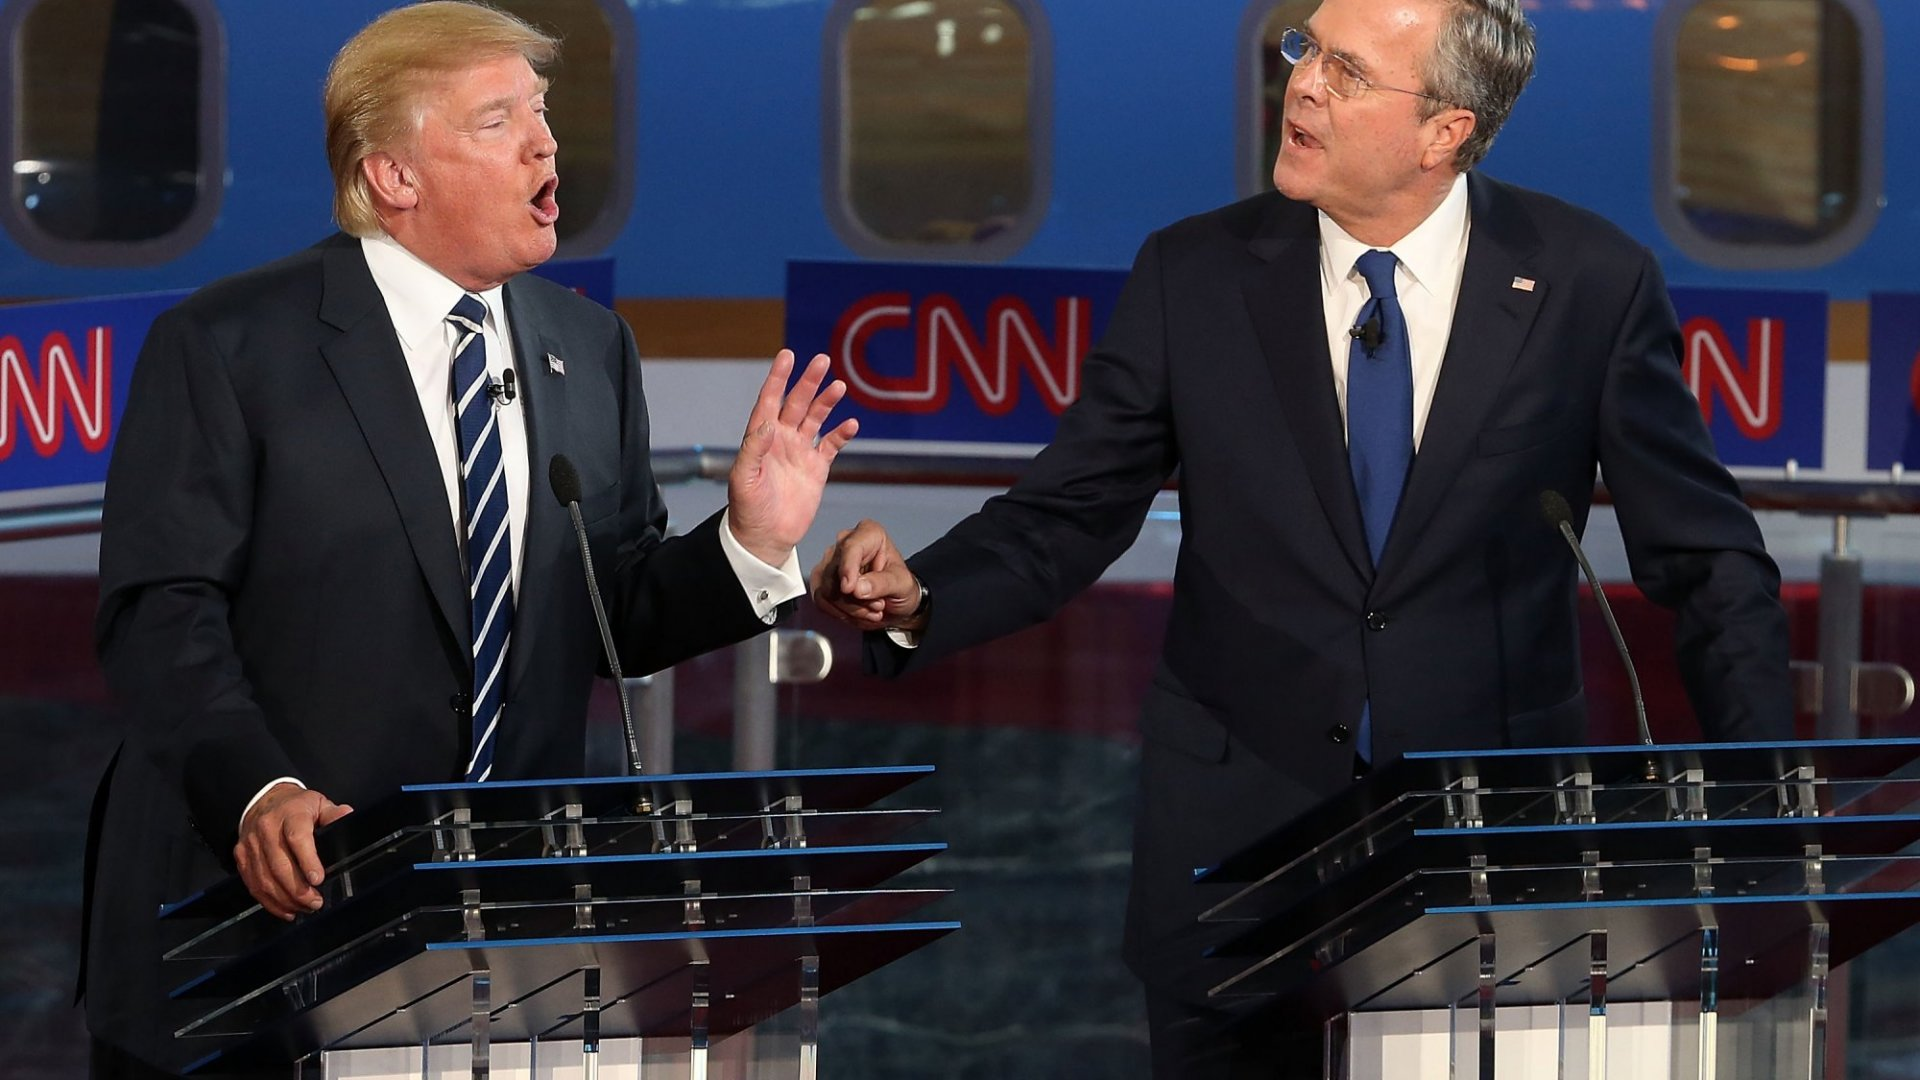 Jeb Bush and Donald Trump Show Why Marketing Details Matter